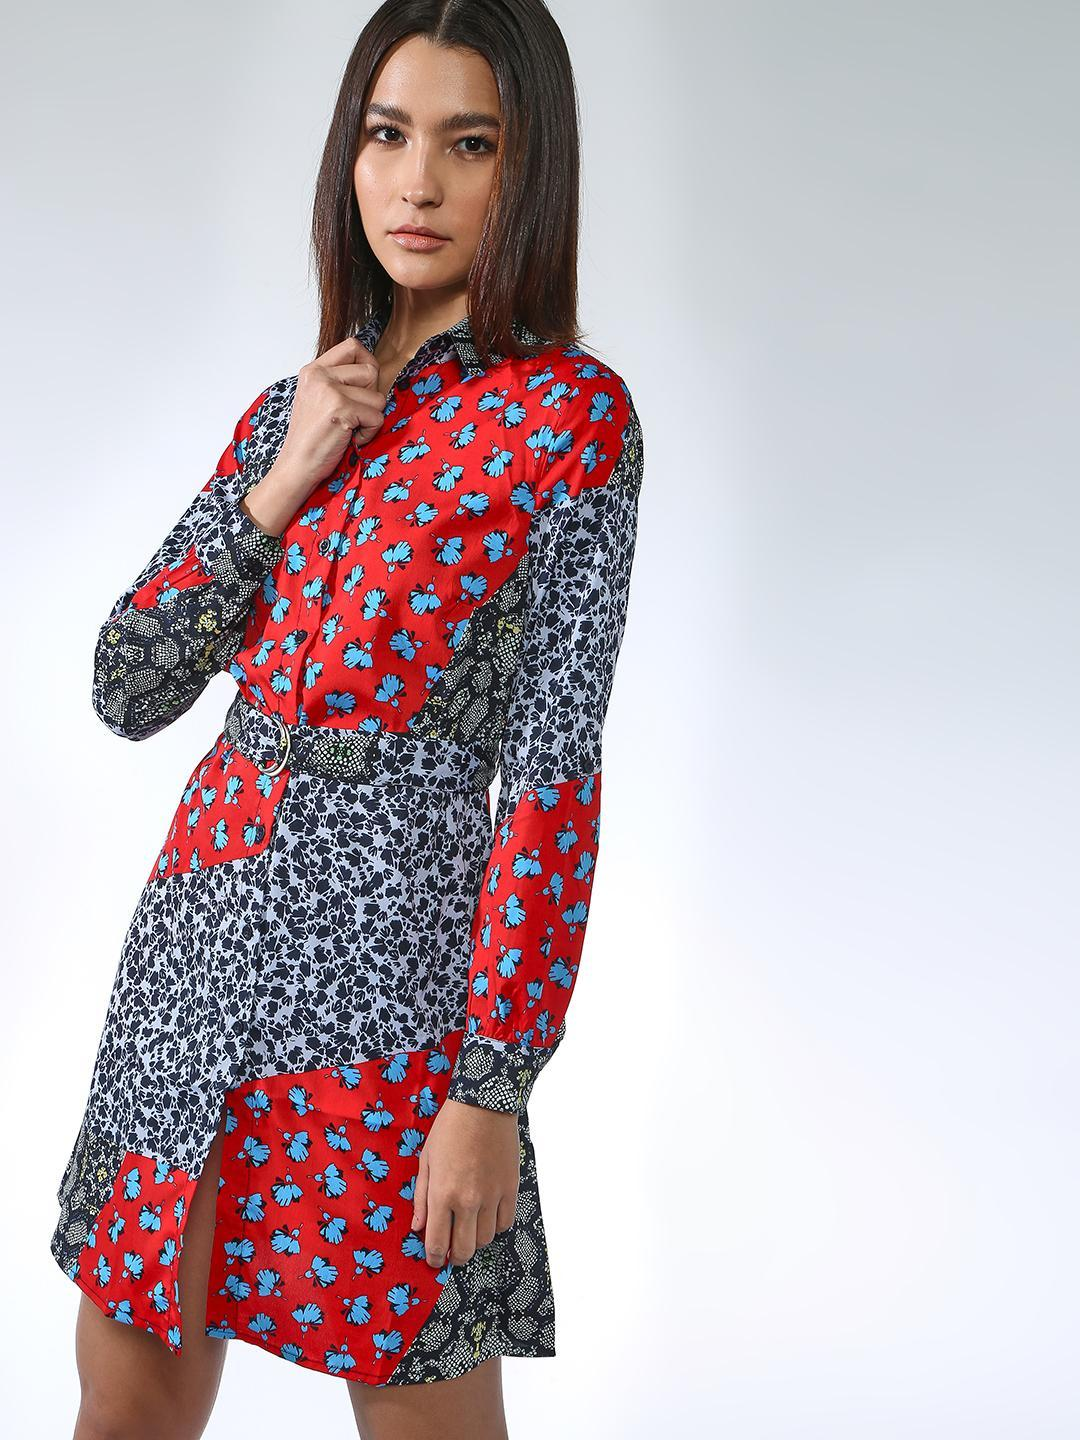 Oxolloxo Multicolor All Over Print Shirt Dress 1